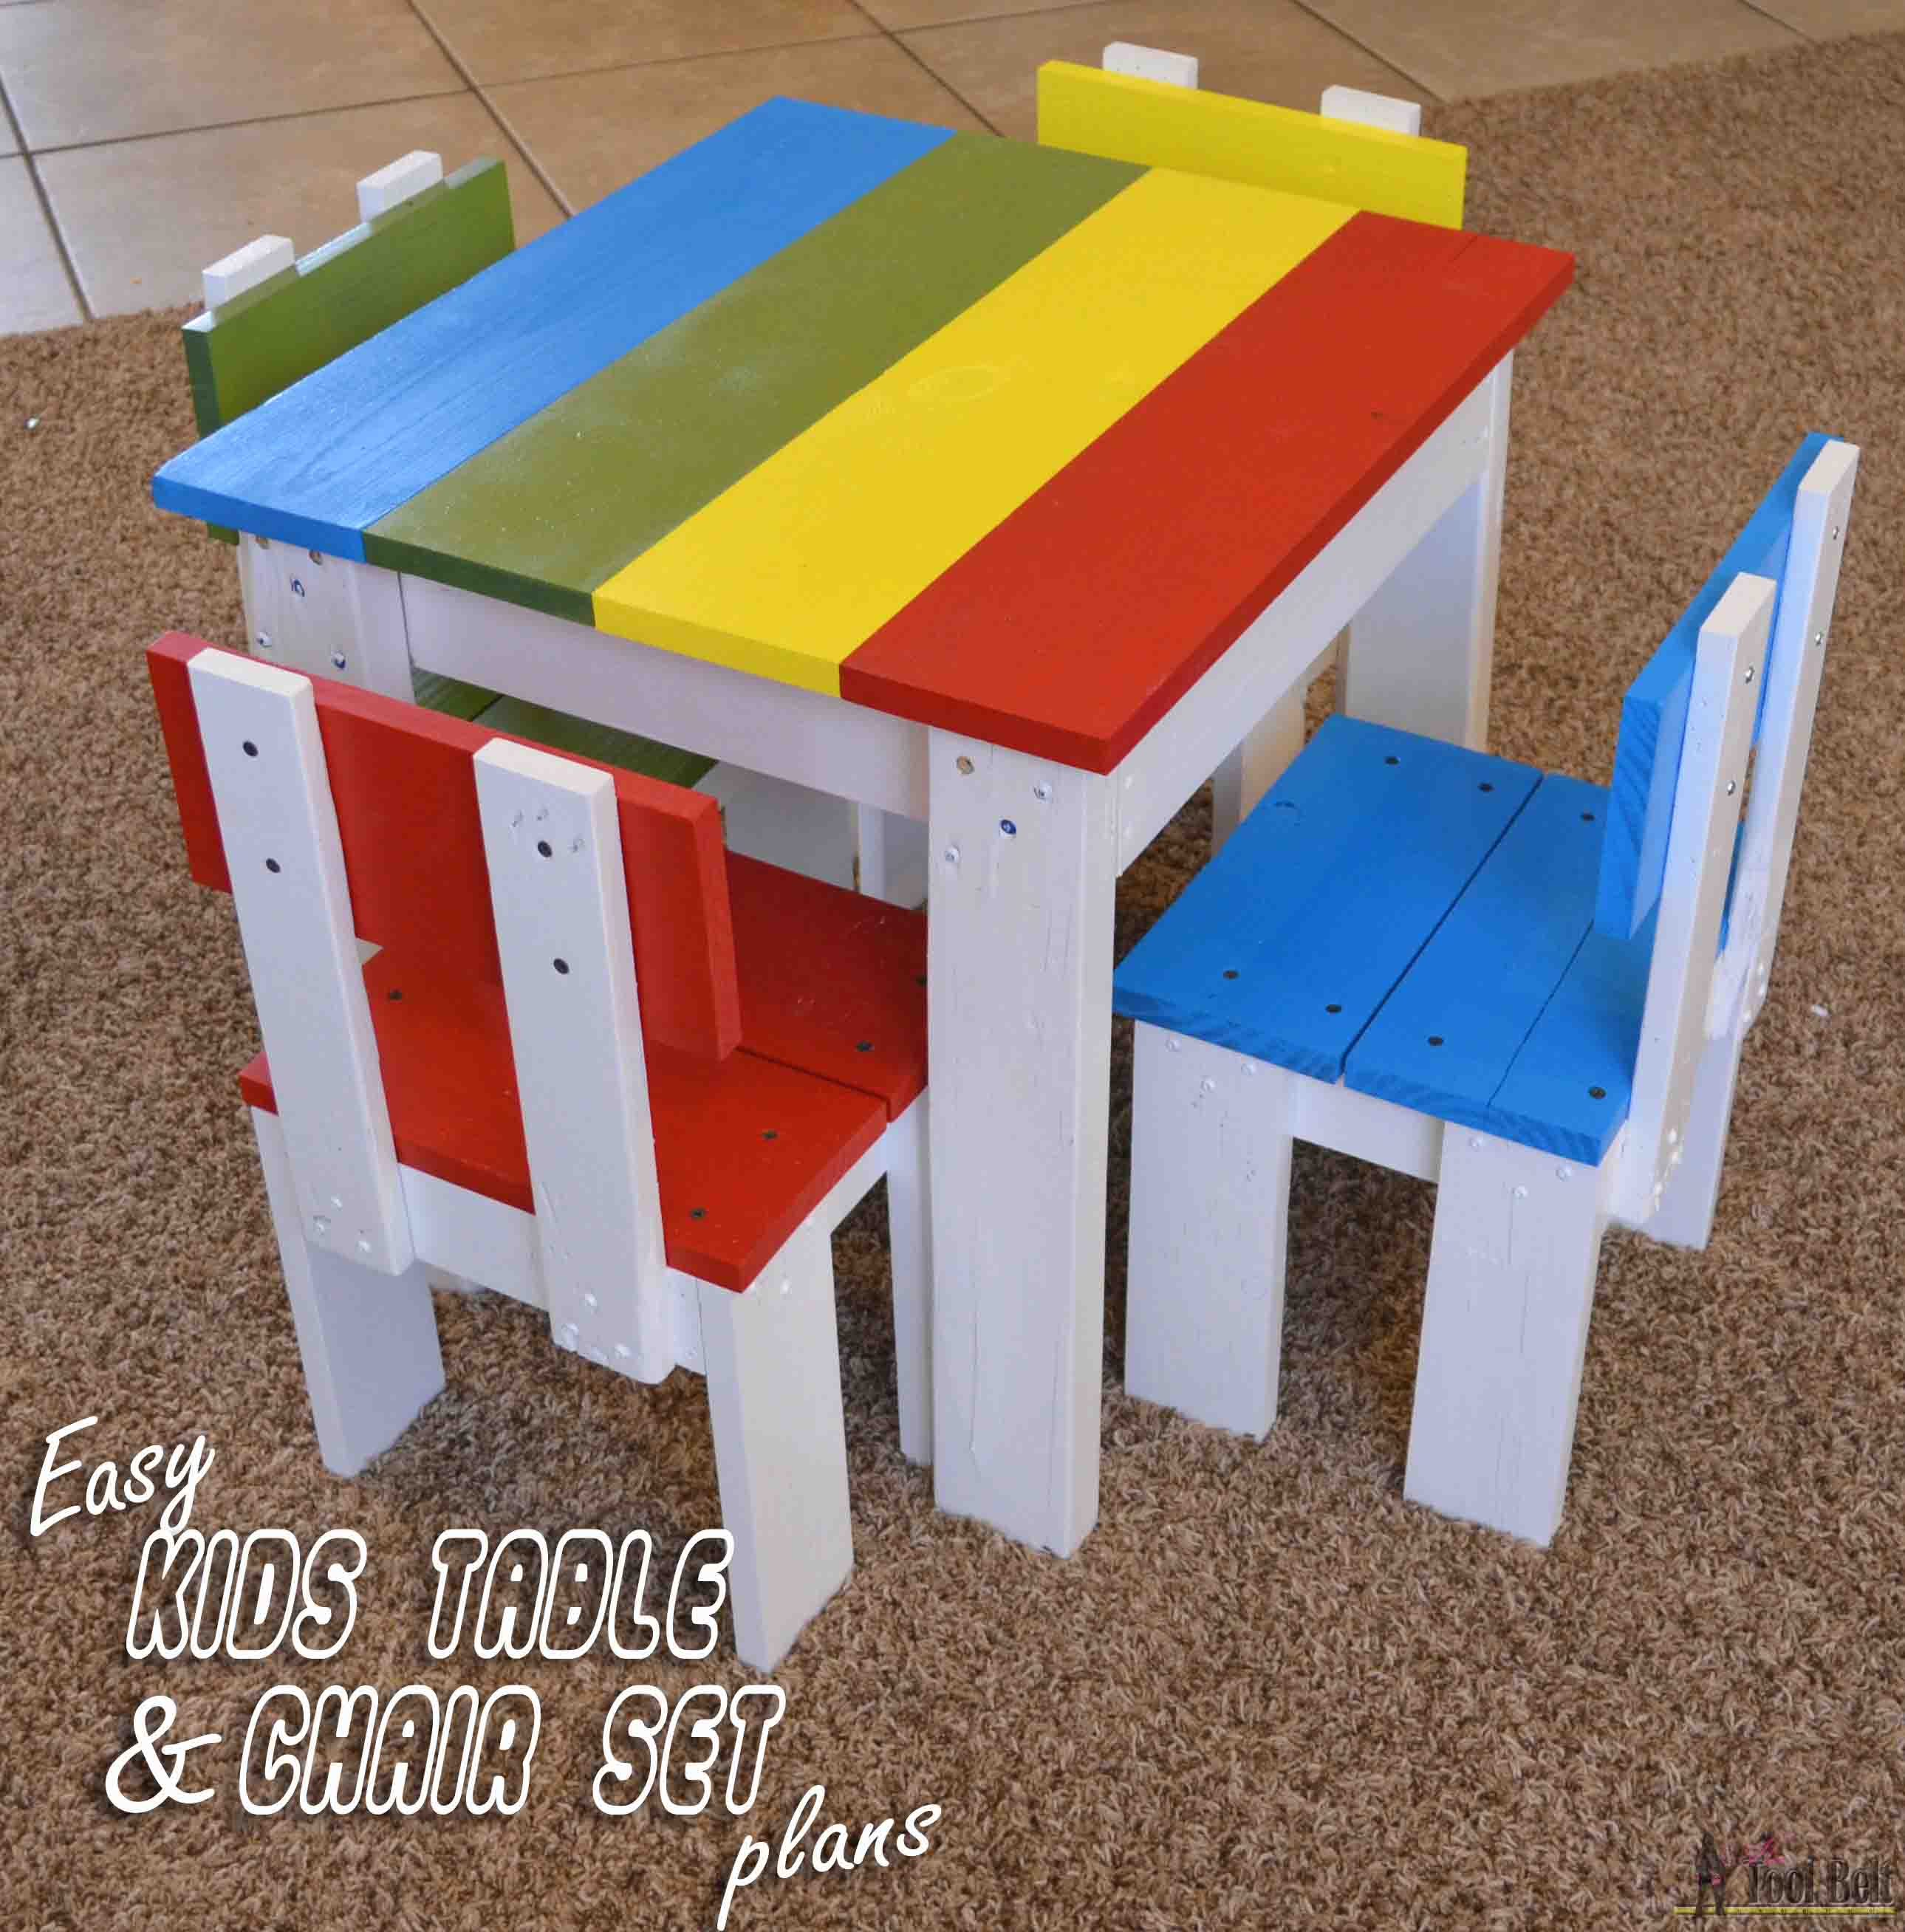 Build an easy table and chair set for the little kids. The set costs about  sc 1 st  Her Tool Belt & Simple Kidu0027s Table and Chair Set - Her Tool Belt